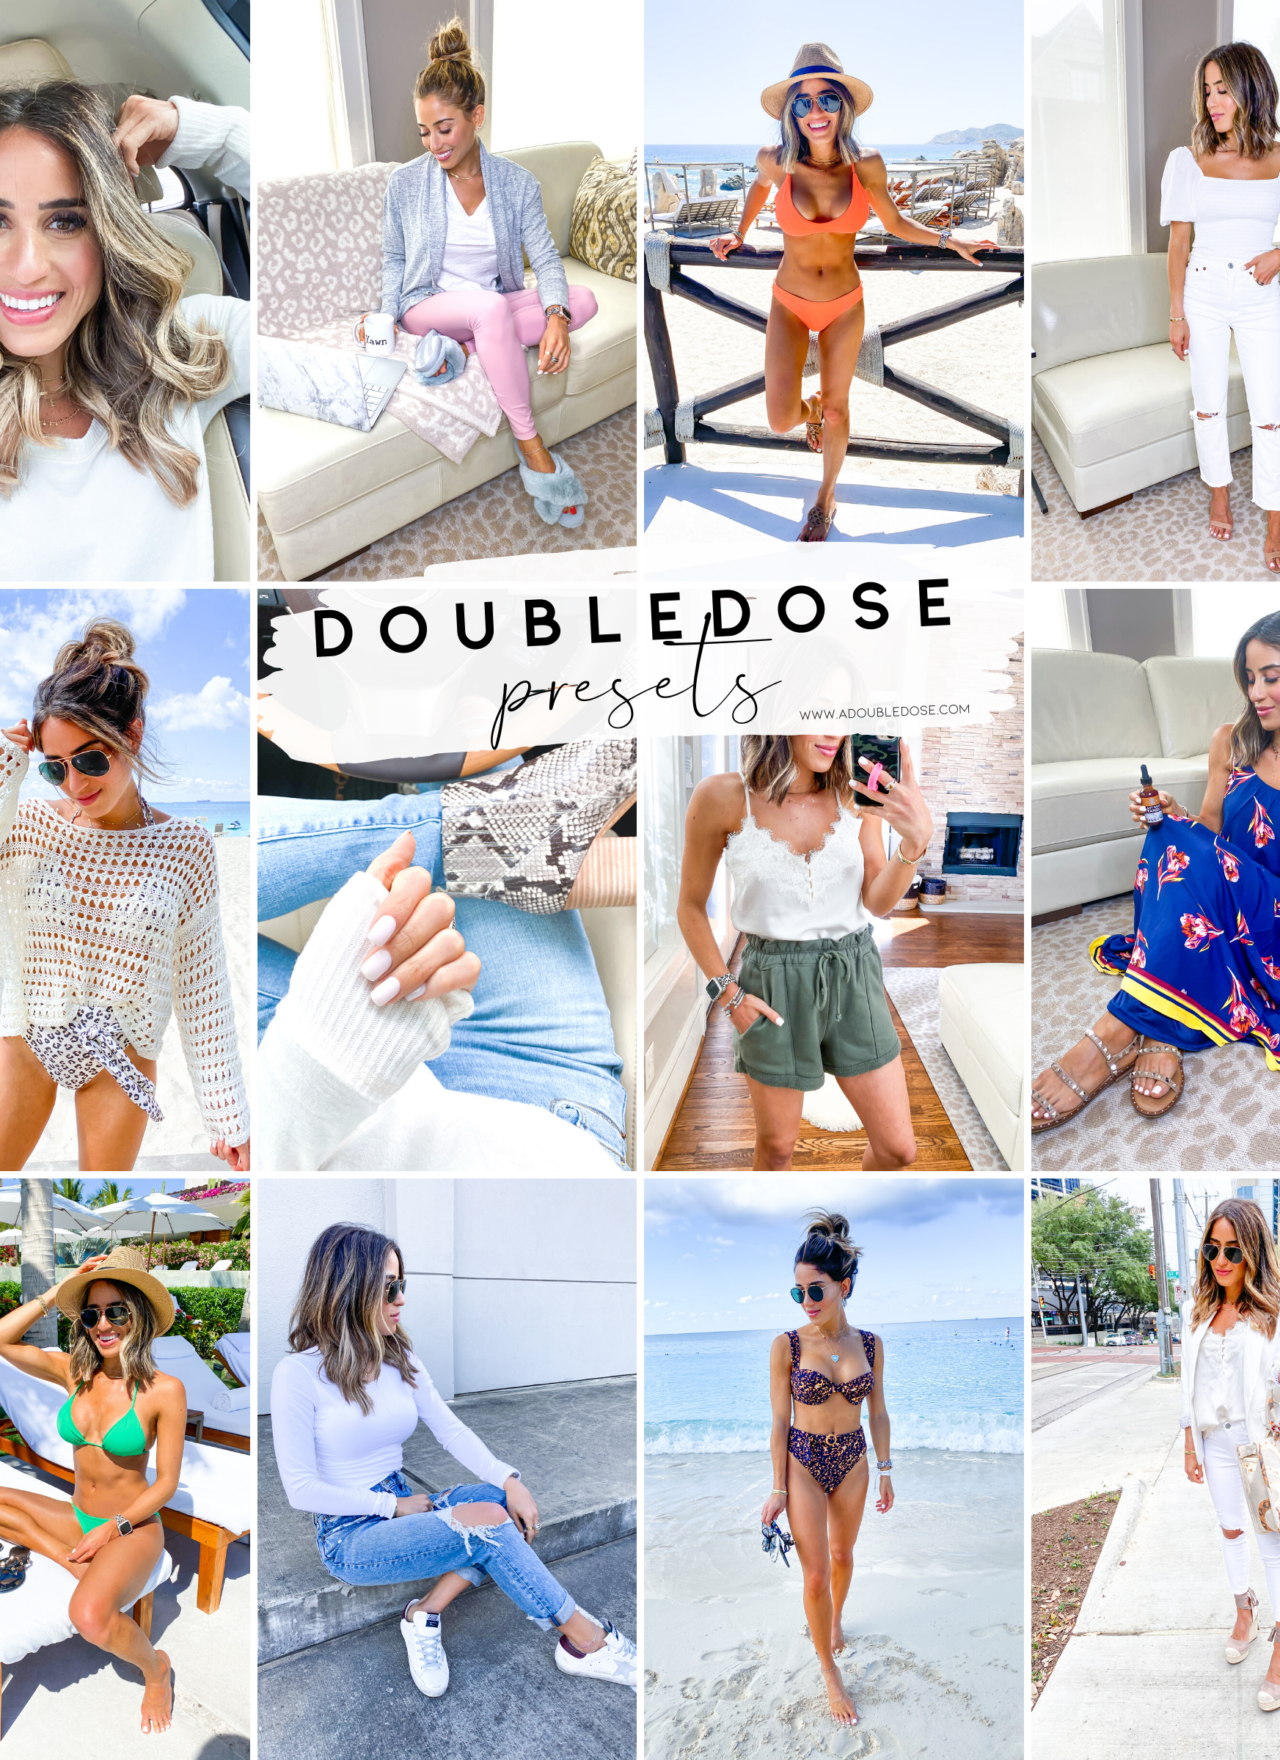 lifestyle and fashion bloggers alexis and samantha belbel sharing their mobile lightroom presets and how they edit all of their instagram photos in one click to make them light and airy | adoubledose.com